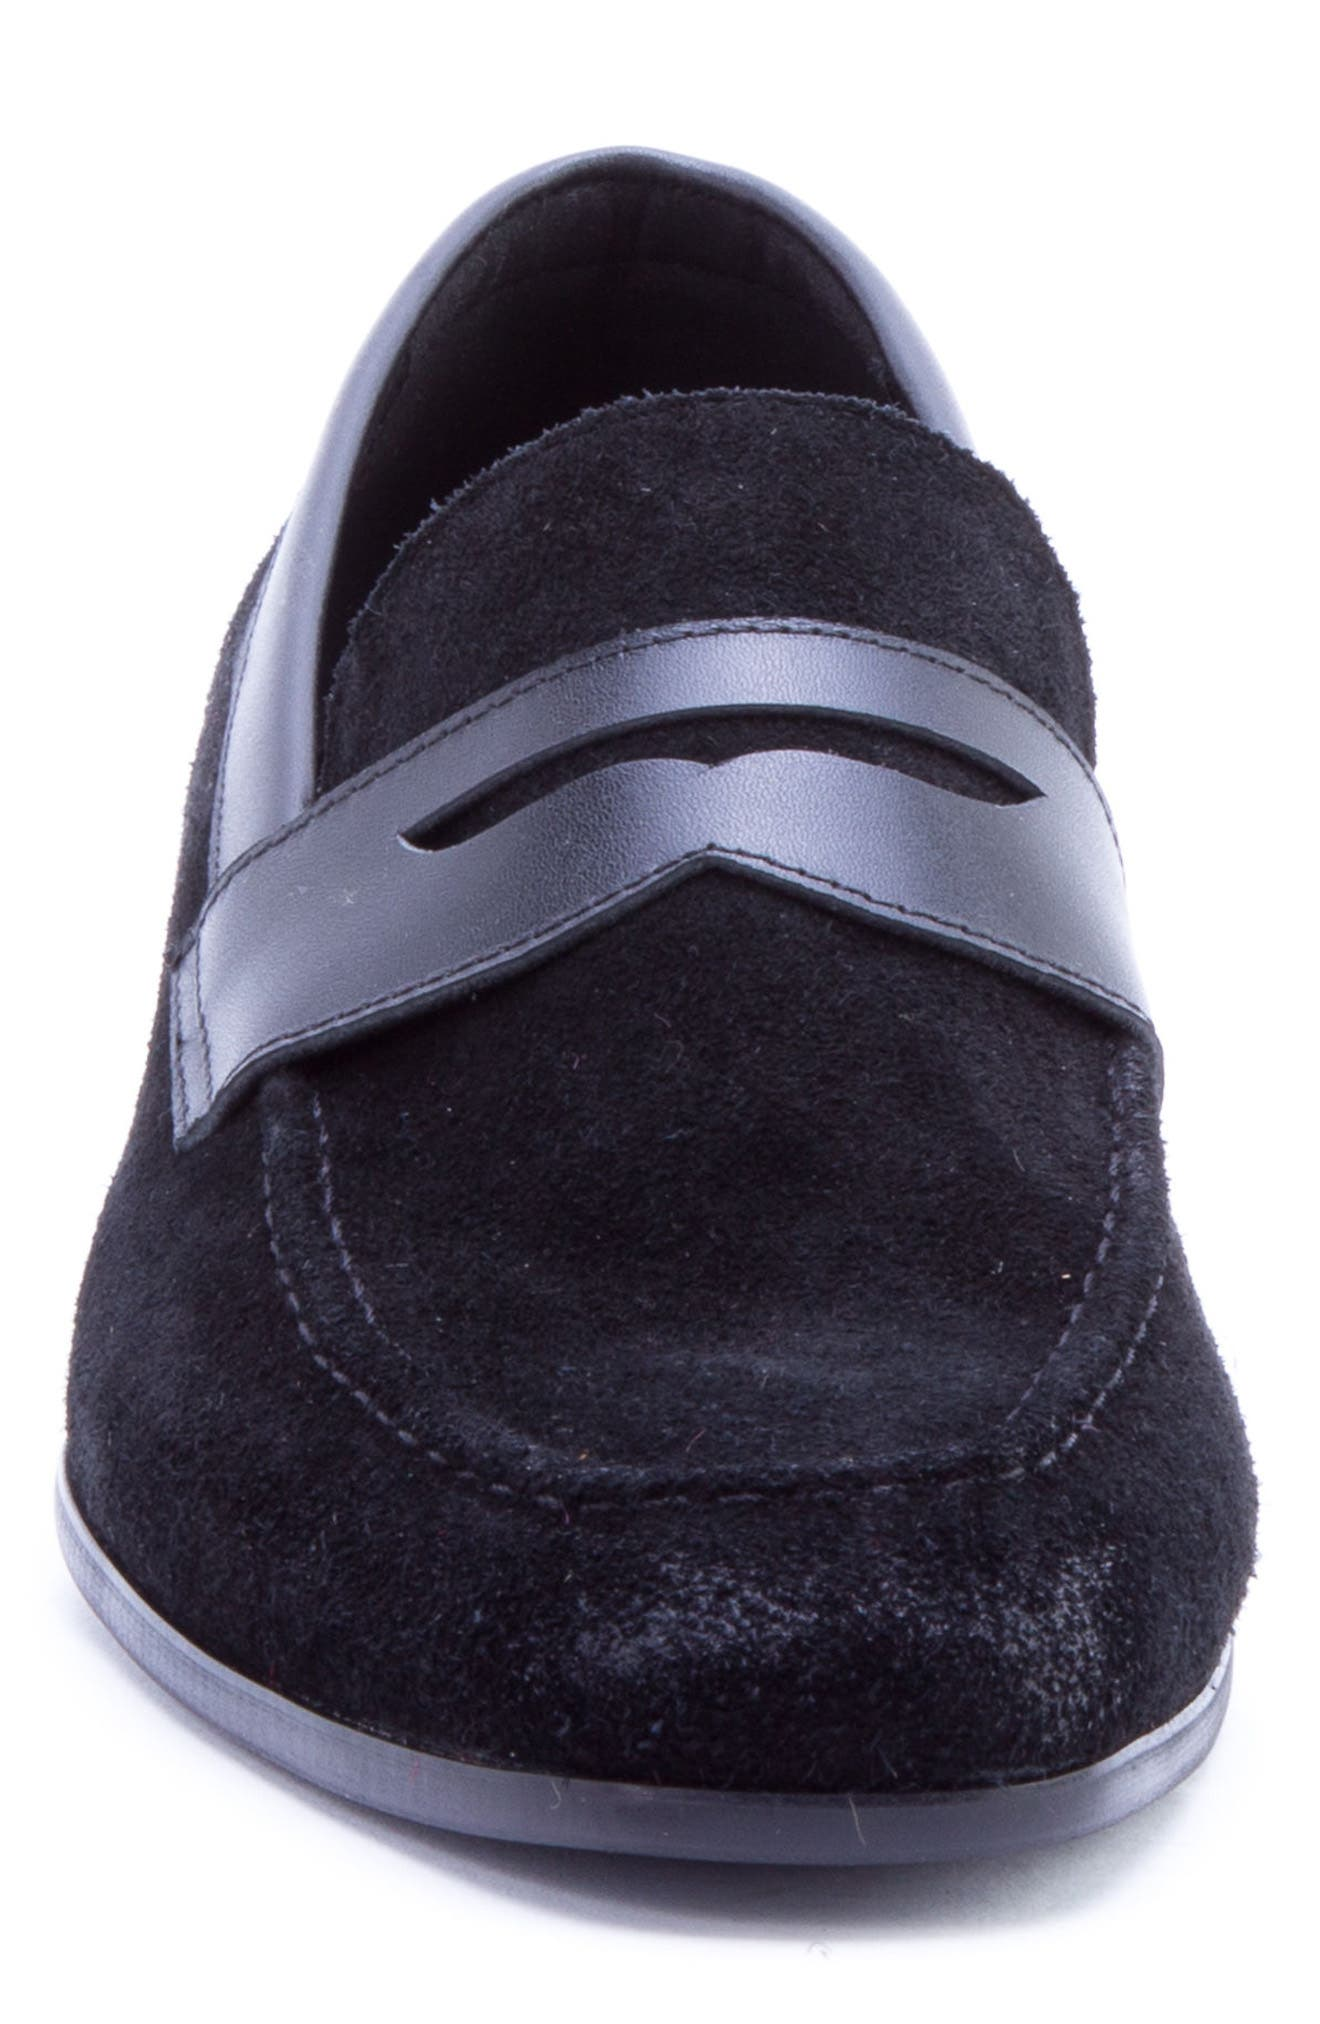 Siena Penny Loafer,                             Alternate thumbnail 4, color,                             Black Suede/ Leather